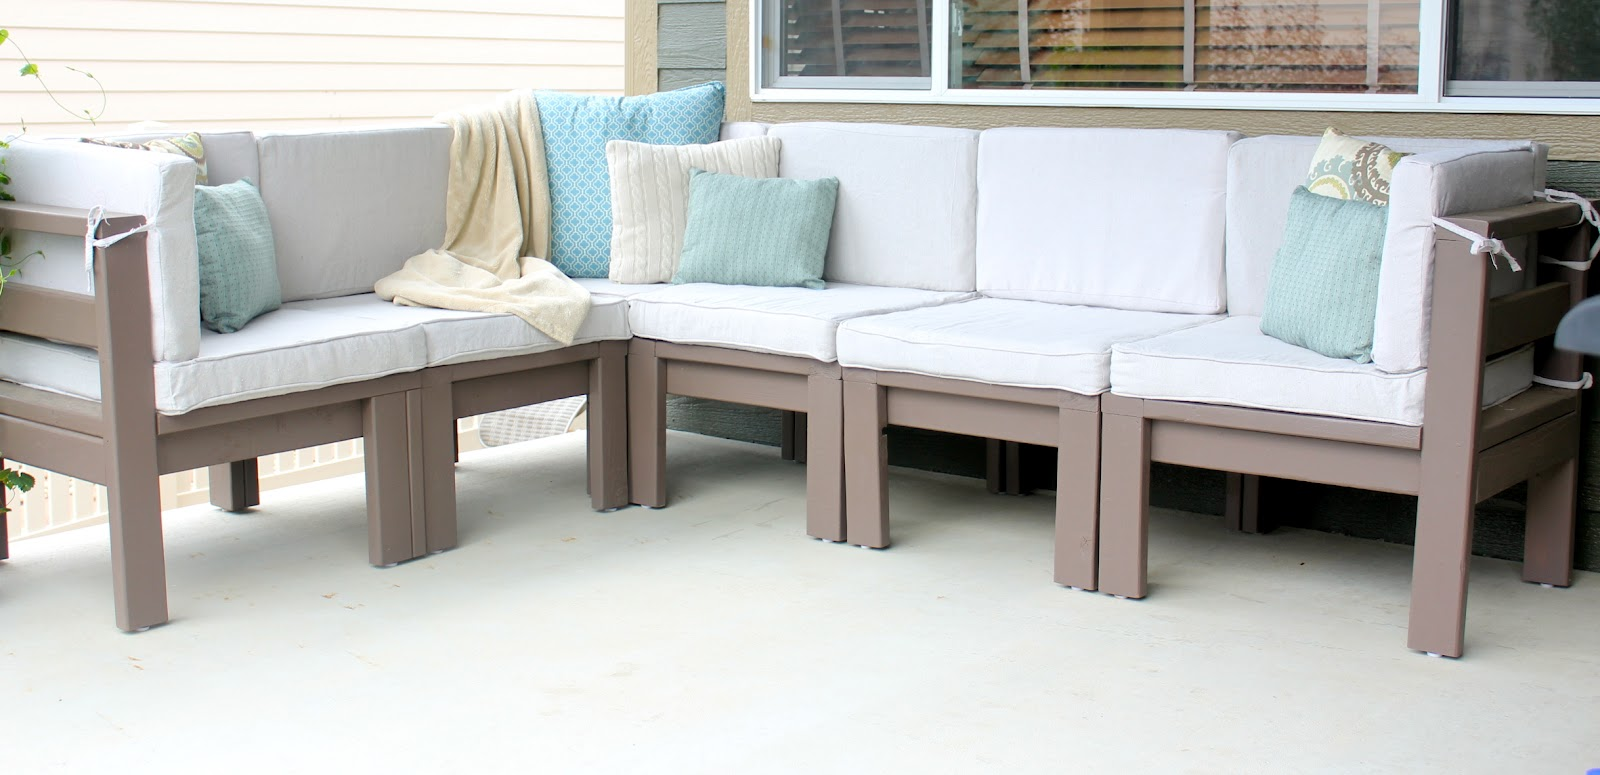 2nd Story Sewing Diy Outdoor Sectional